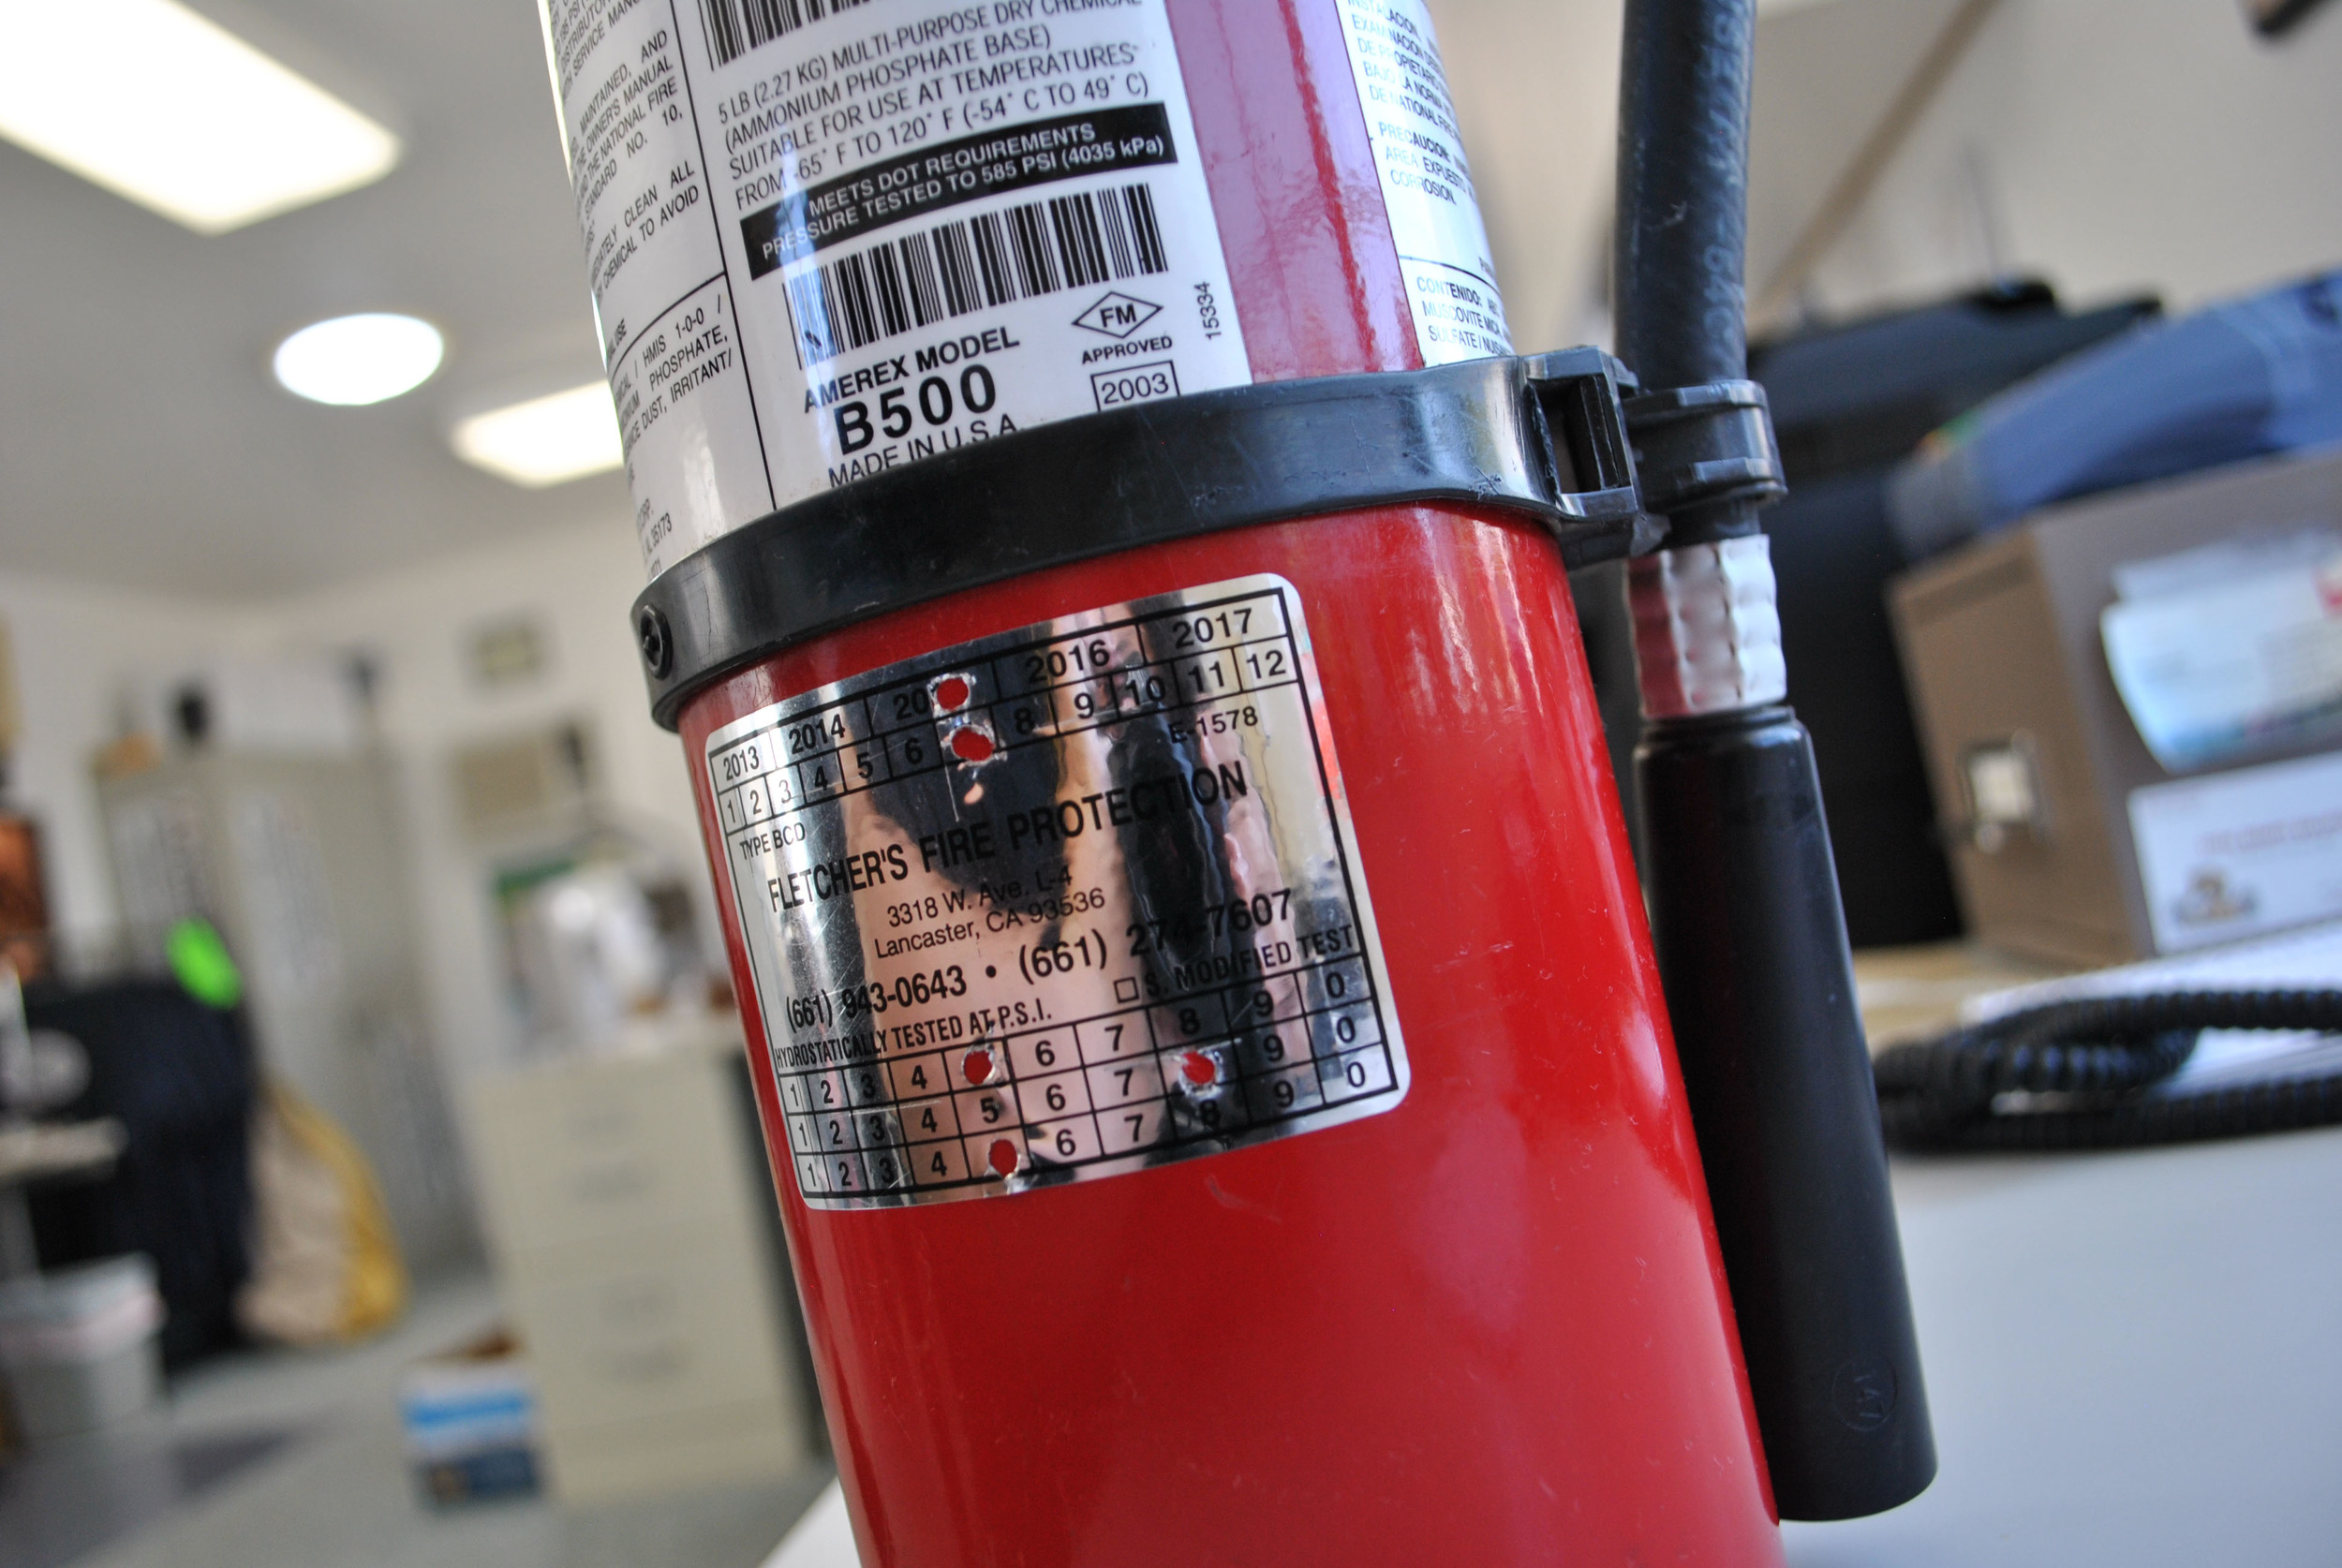 This fire extinguisher is 12 years old and so requireda hydro test. The back of the extinguisher with its hydro test sticker is pictured here.